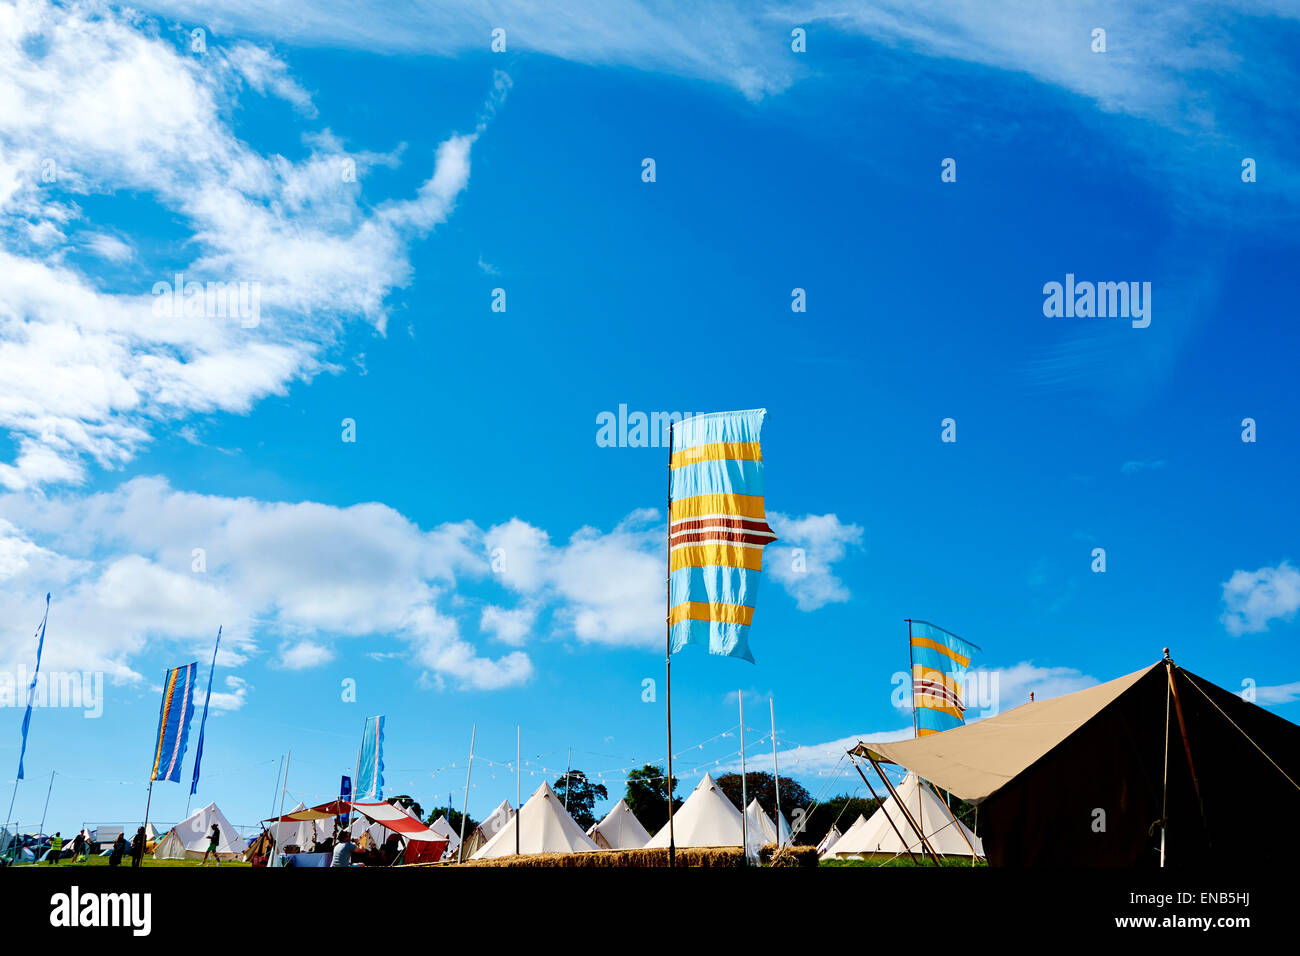 The boutique camping area at Festival No.6, Portmeirion, Wales, UK and people wake boarding - Stock Image